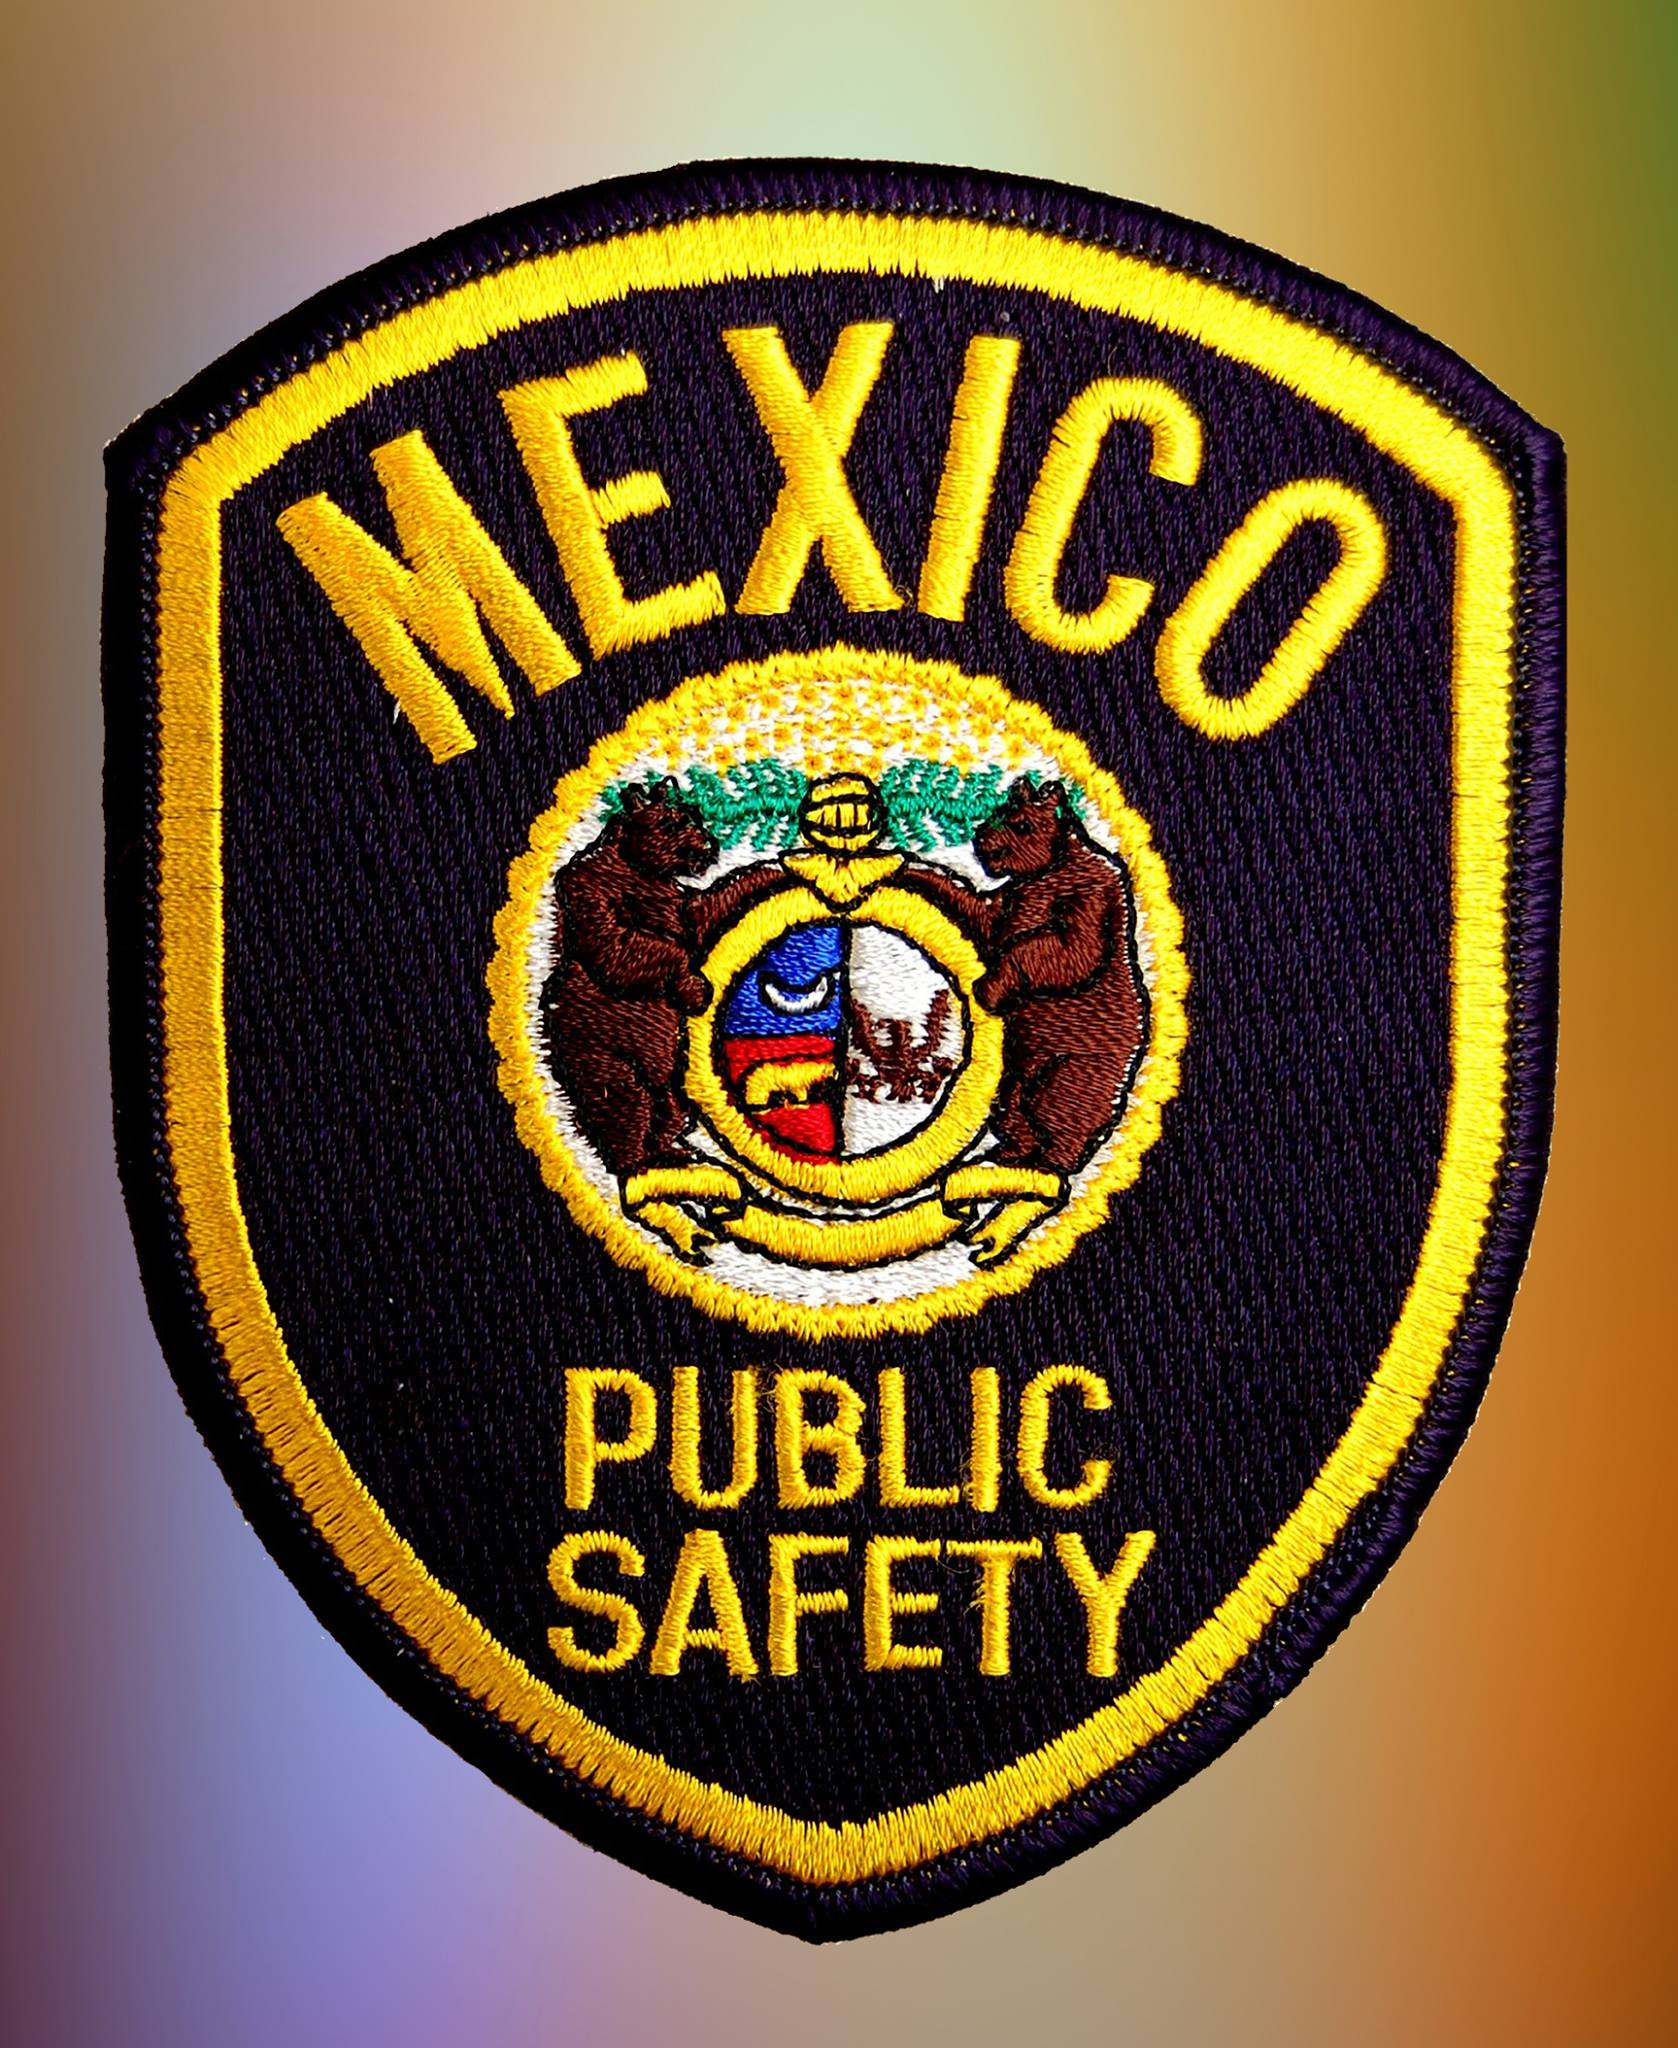 Mexico Public Safety Department badge.